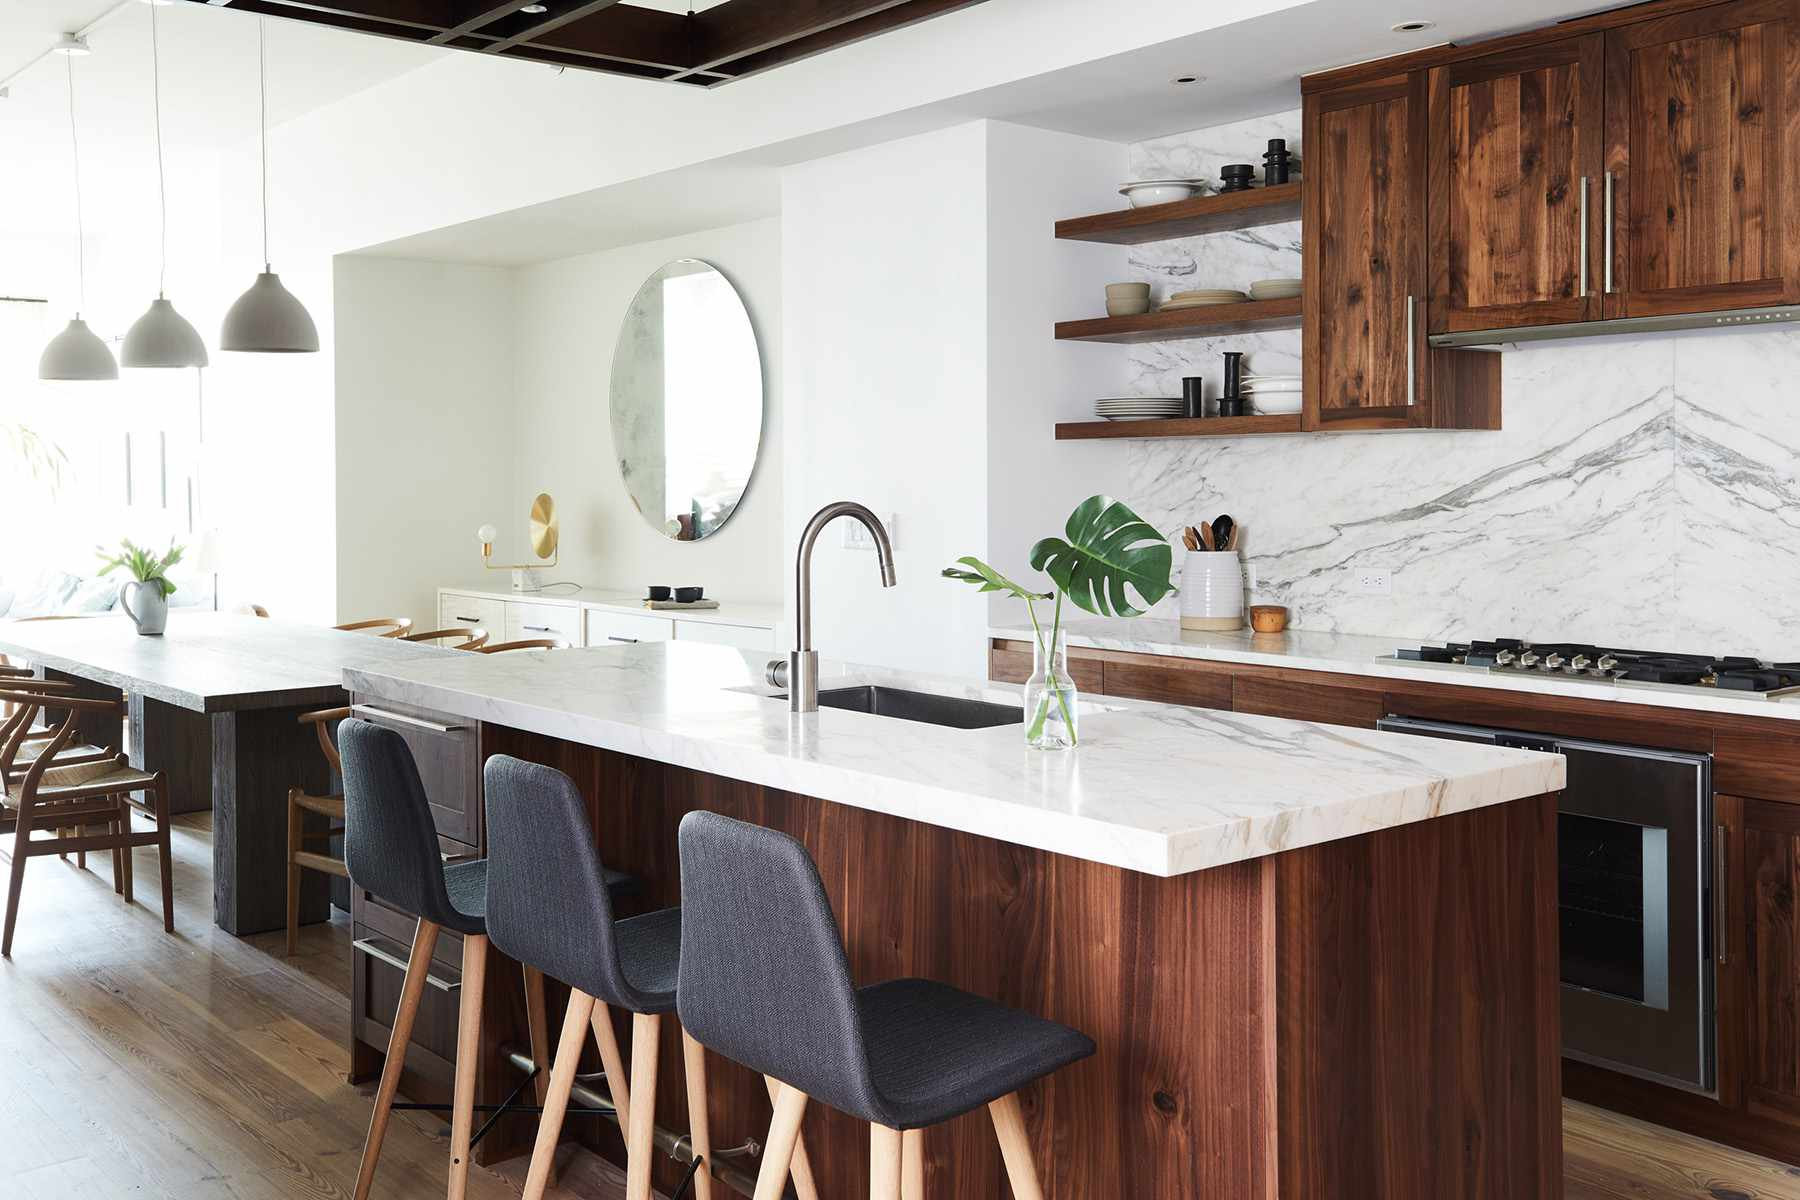 2020 Kitchen Trends - What Design Trends Are in For 2020